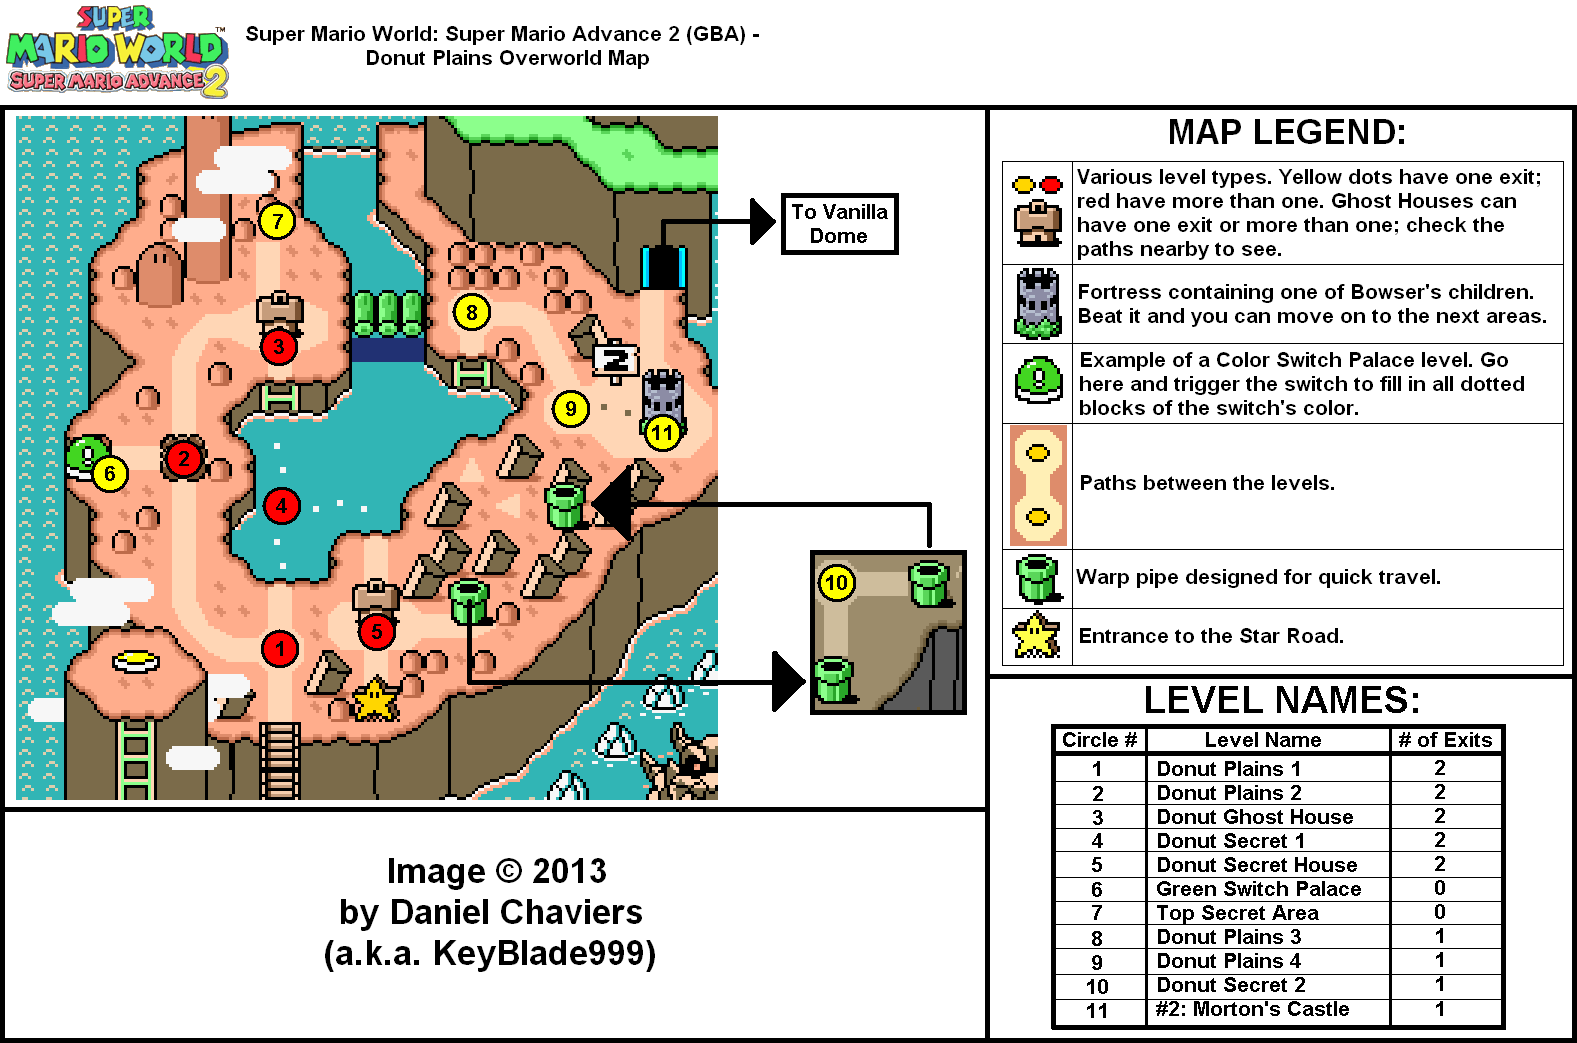 Super Mario Advance 2 Donut Plains Overworld Map Png Neoseeker